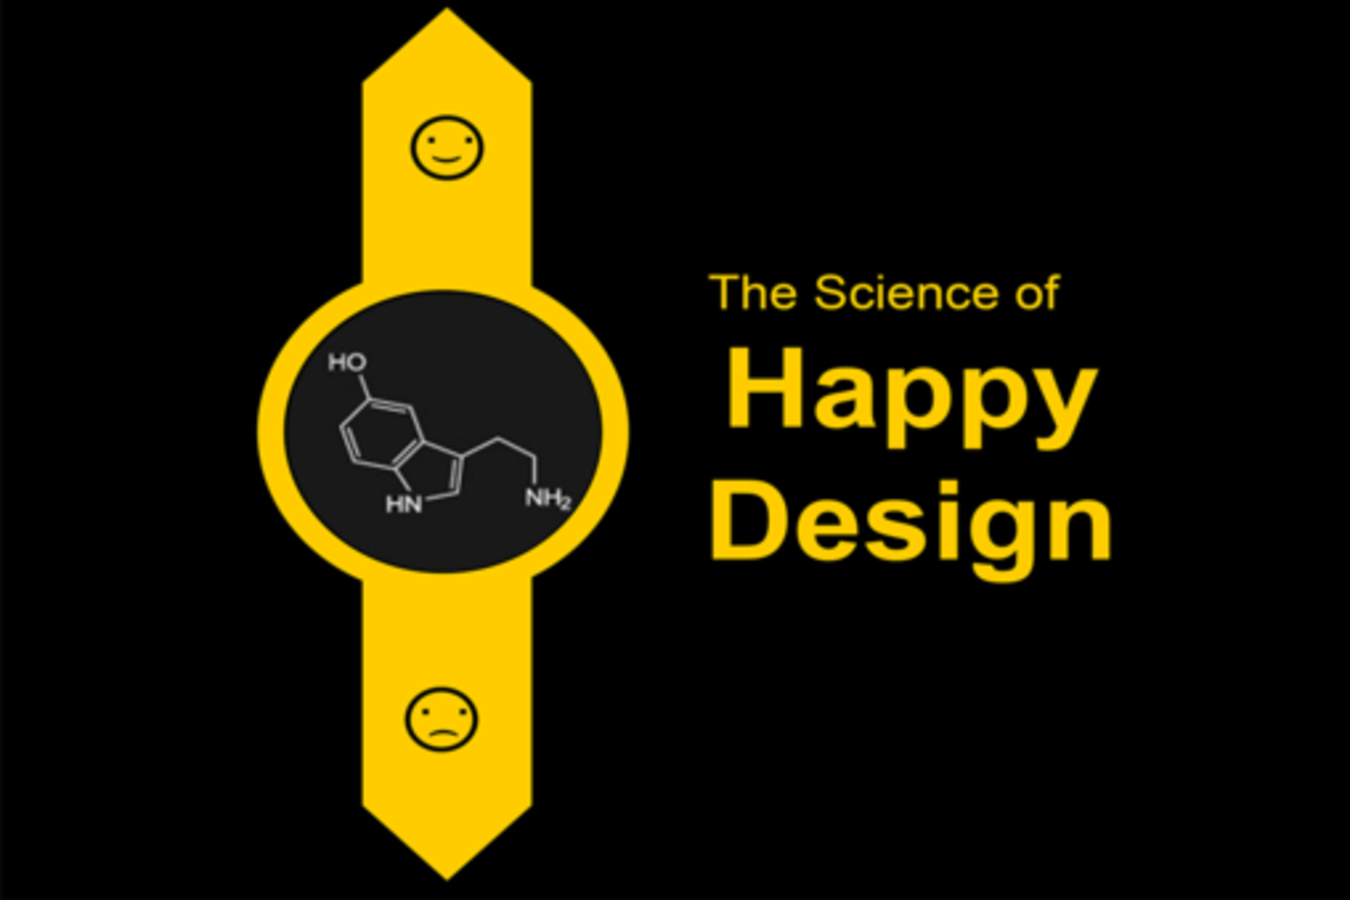 the science of happy design sxsw 2015 event schedule. Black Bedroom Furniture Sets. Home Design Ideas